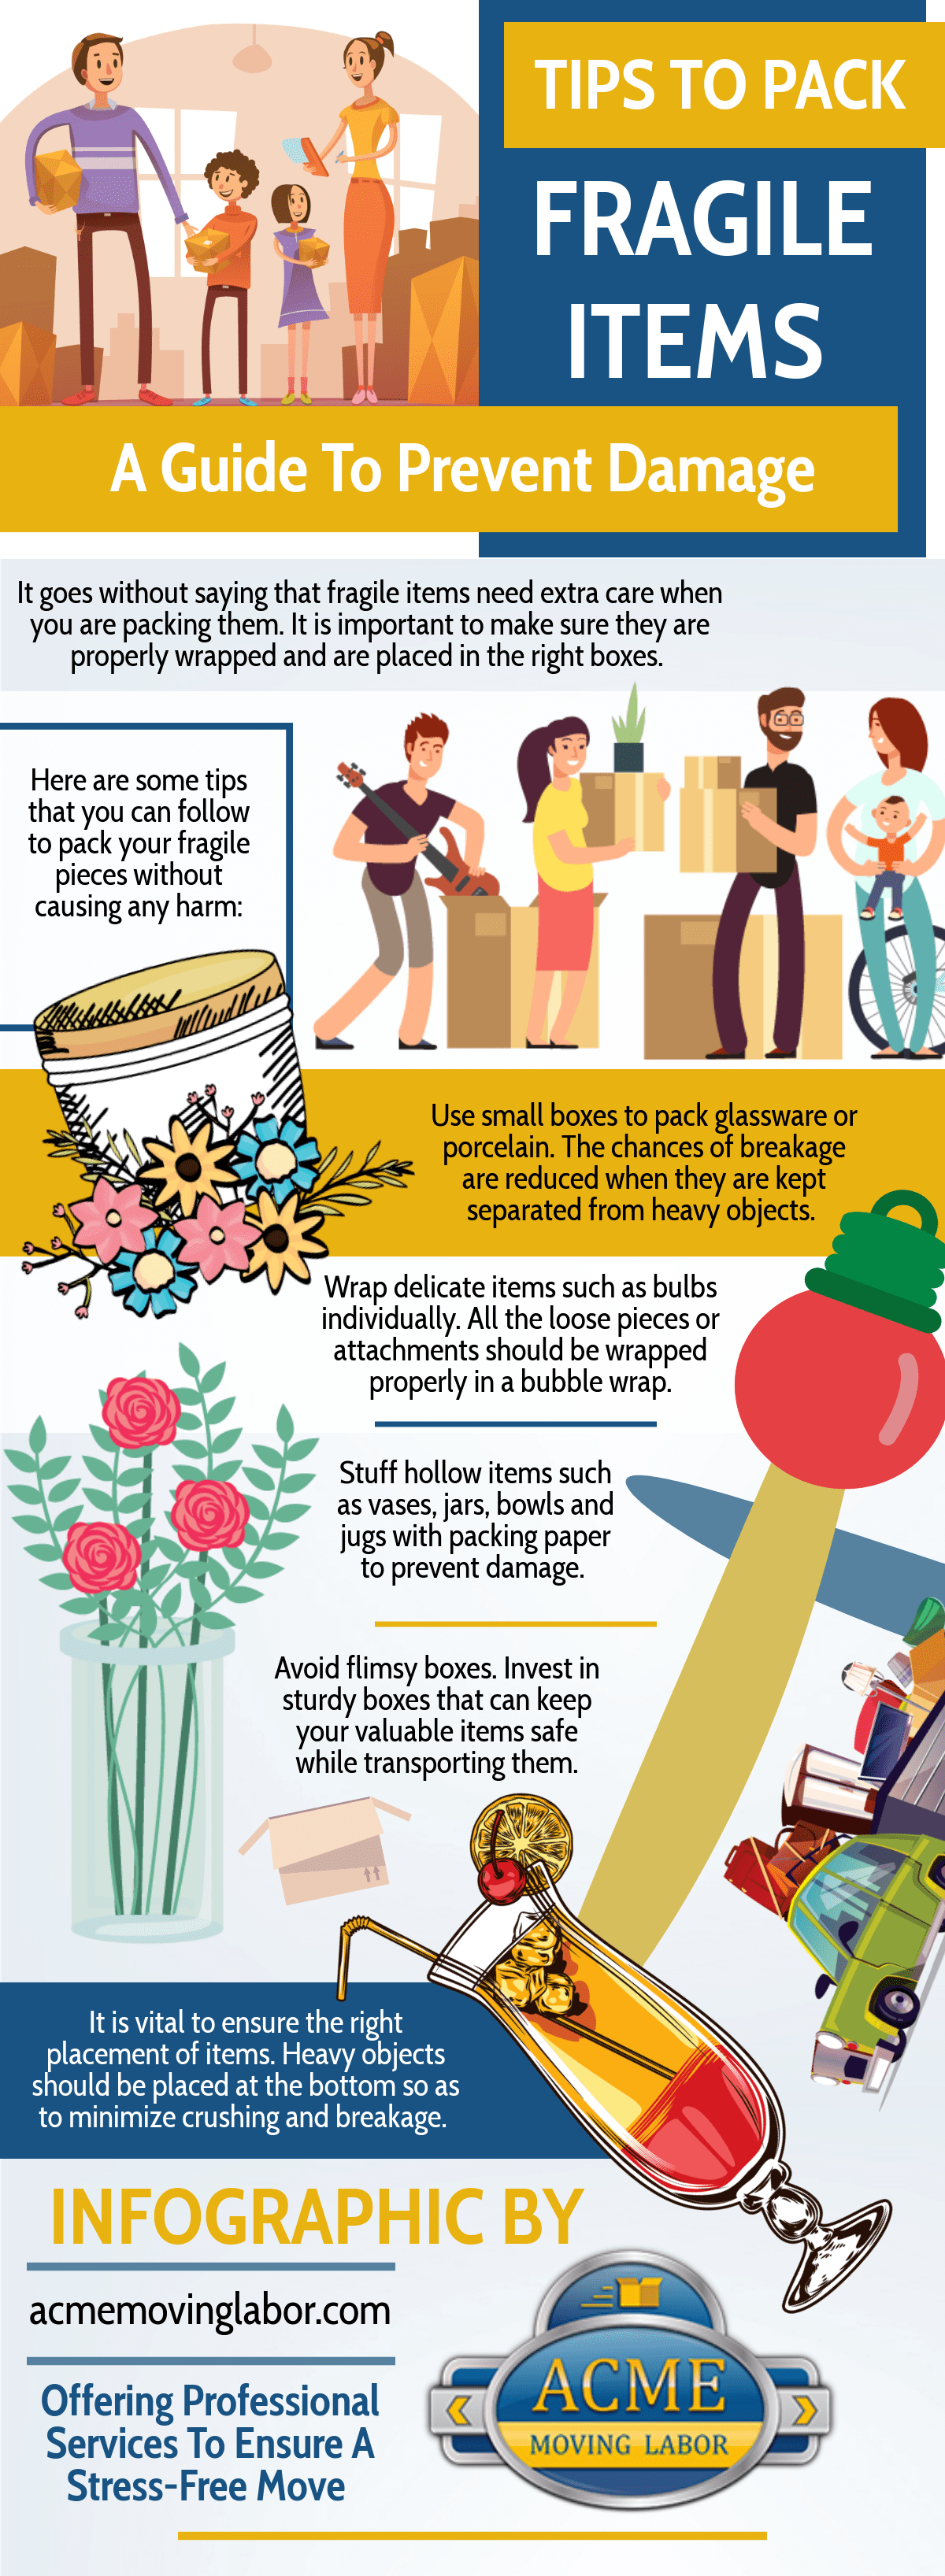 tips to carry fragile items